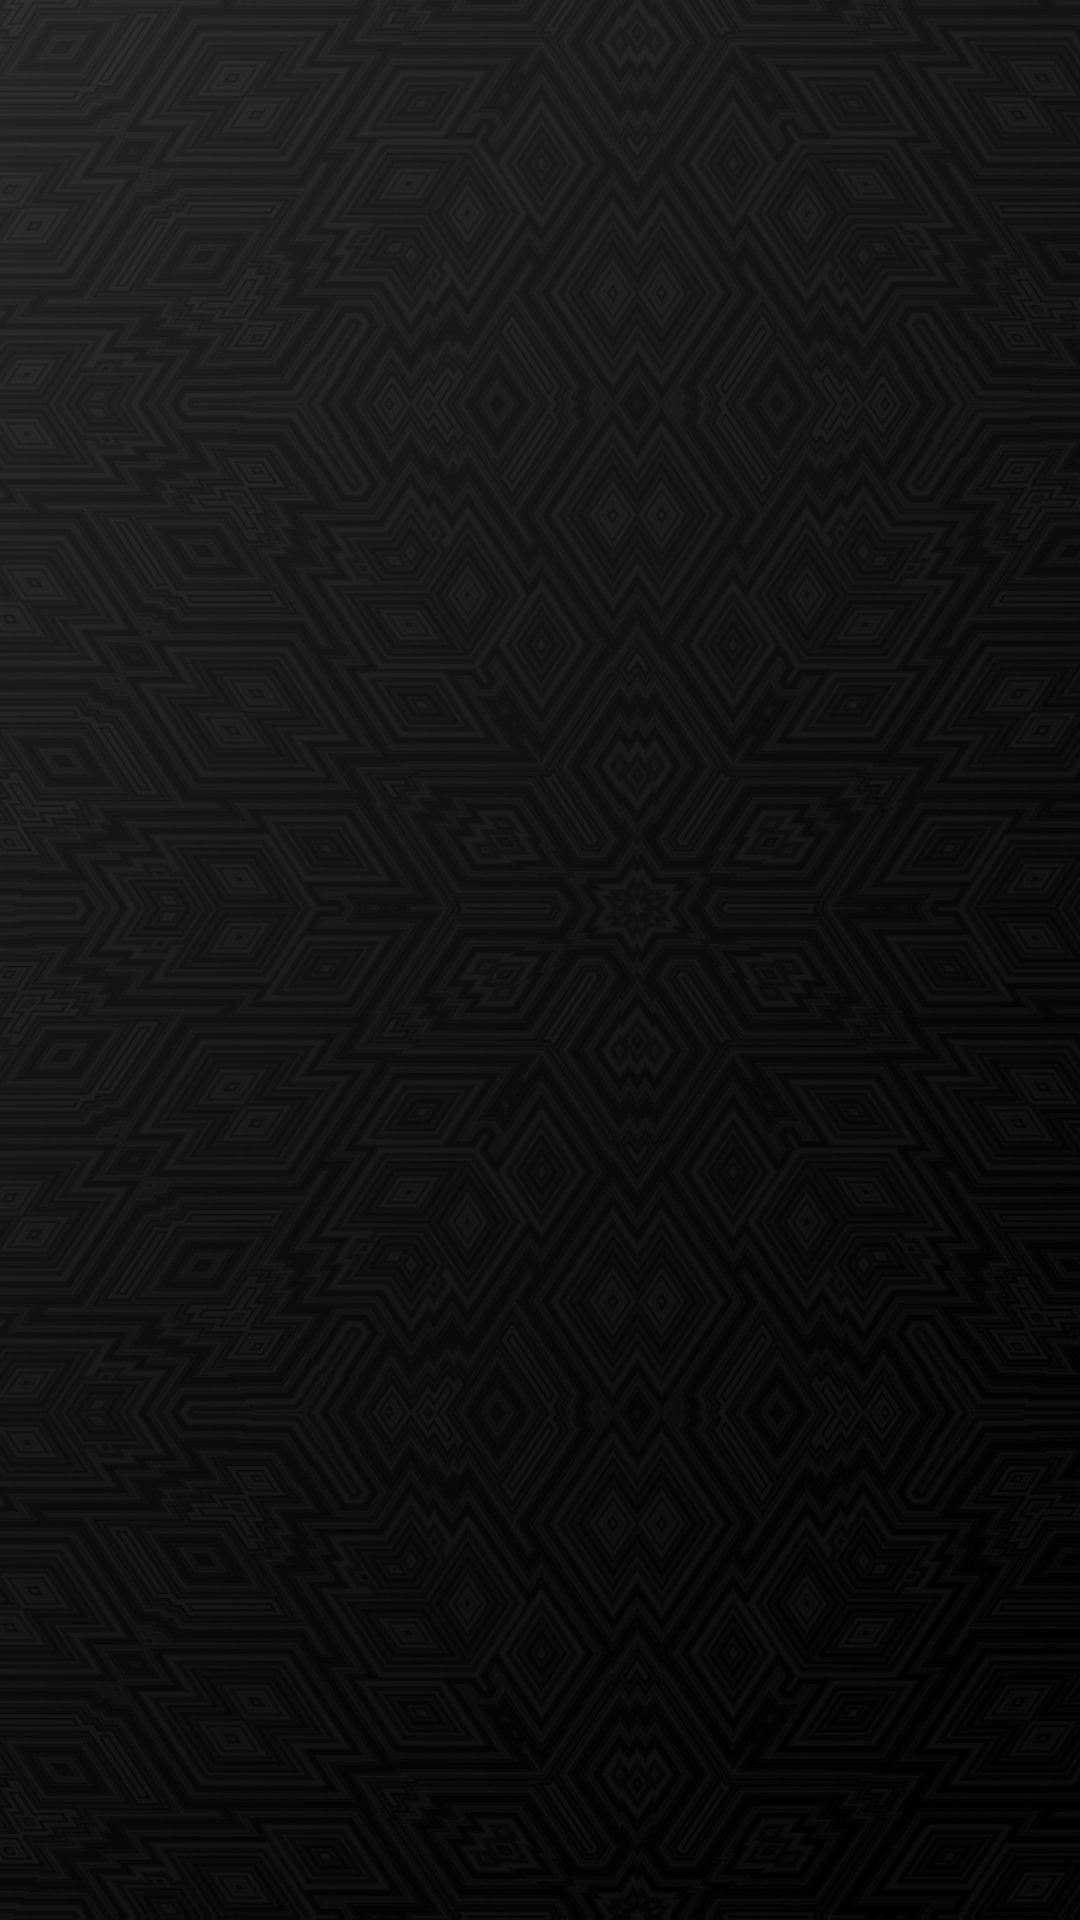 Ultra HD Black Design Wallpaper For Your Mobile Phone ...0318